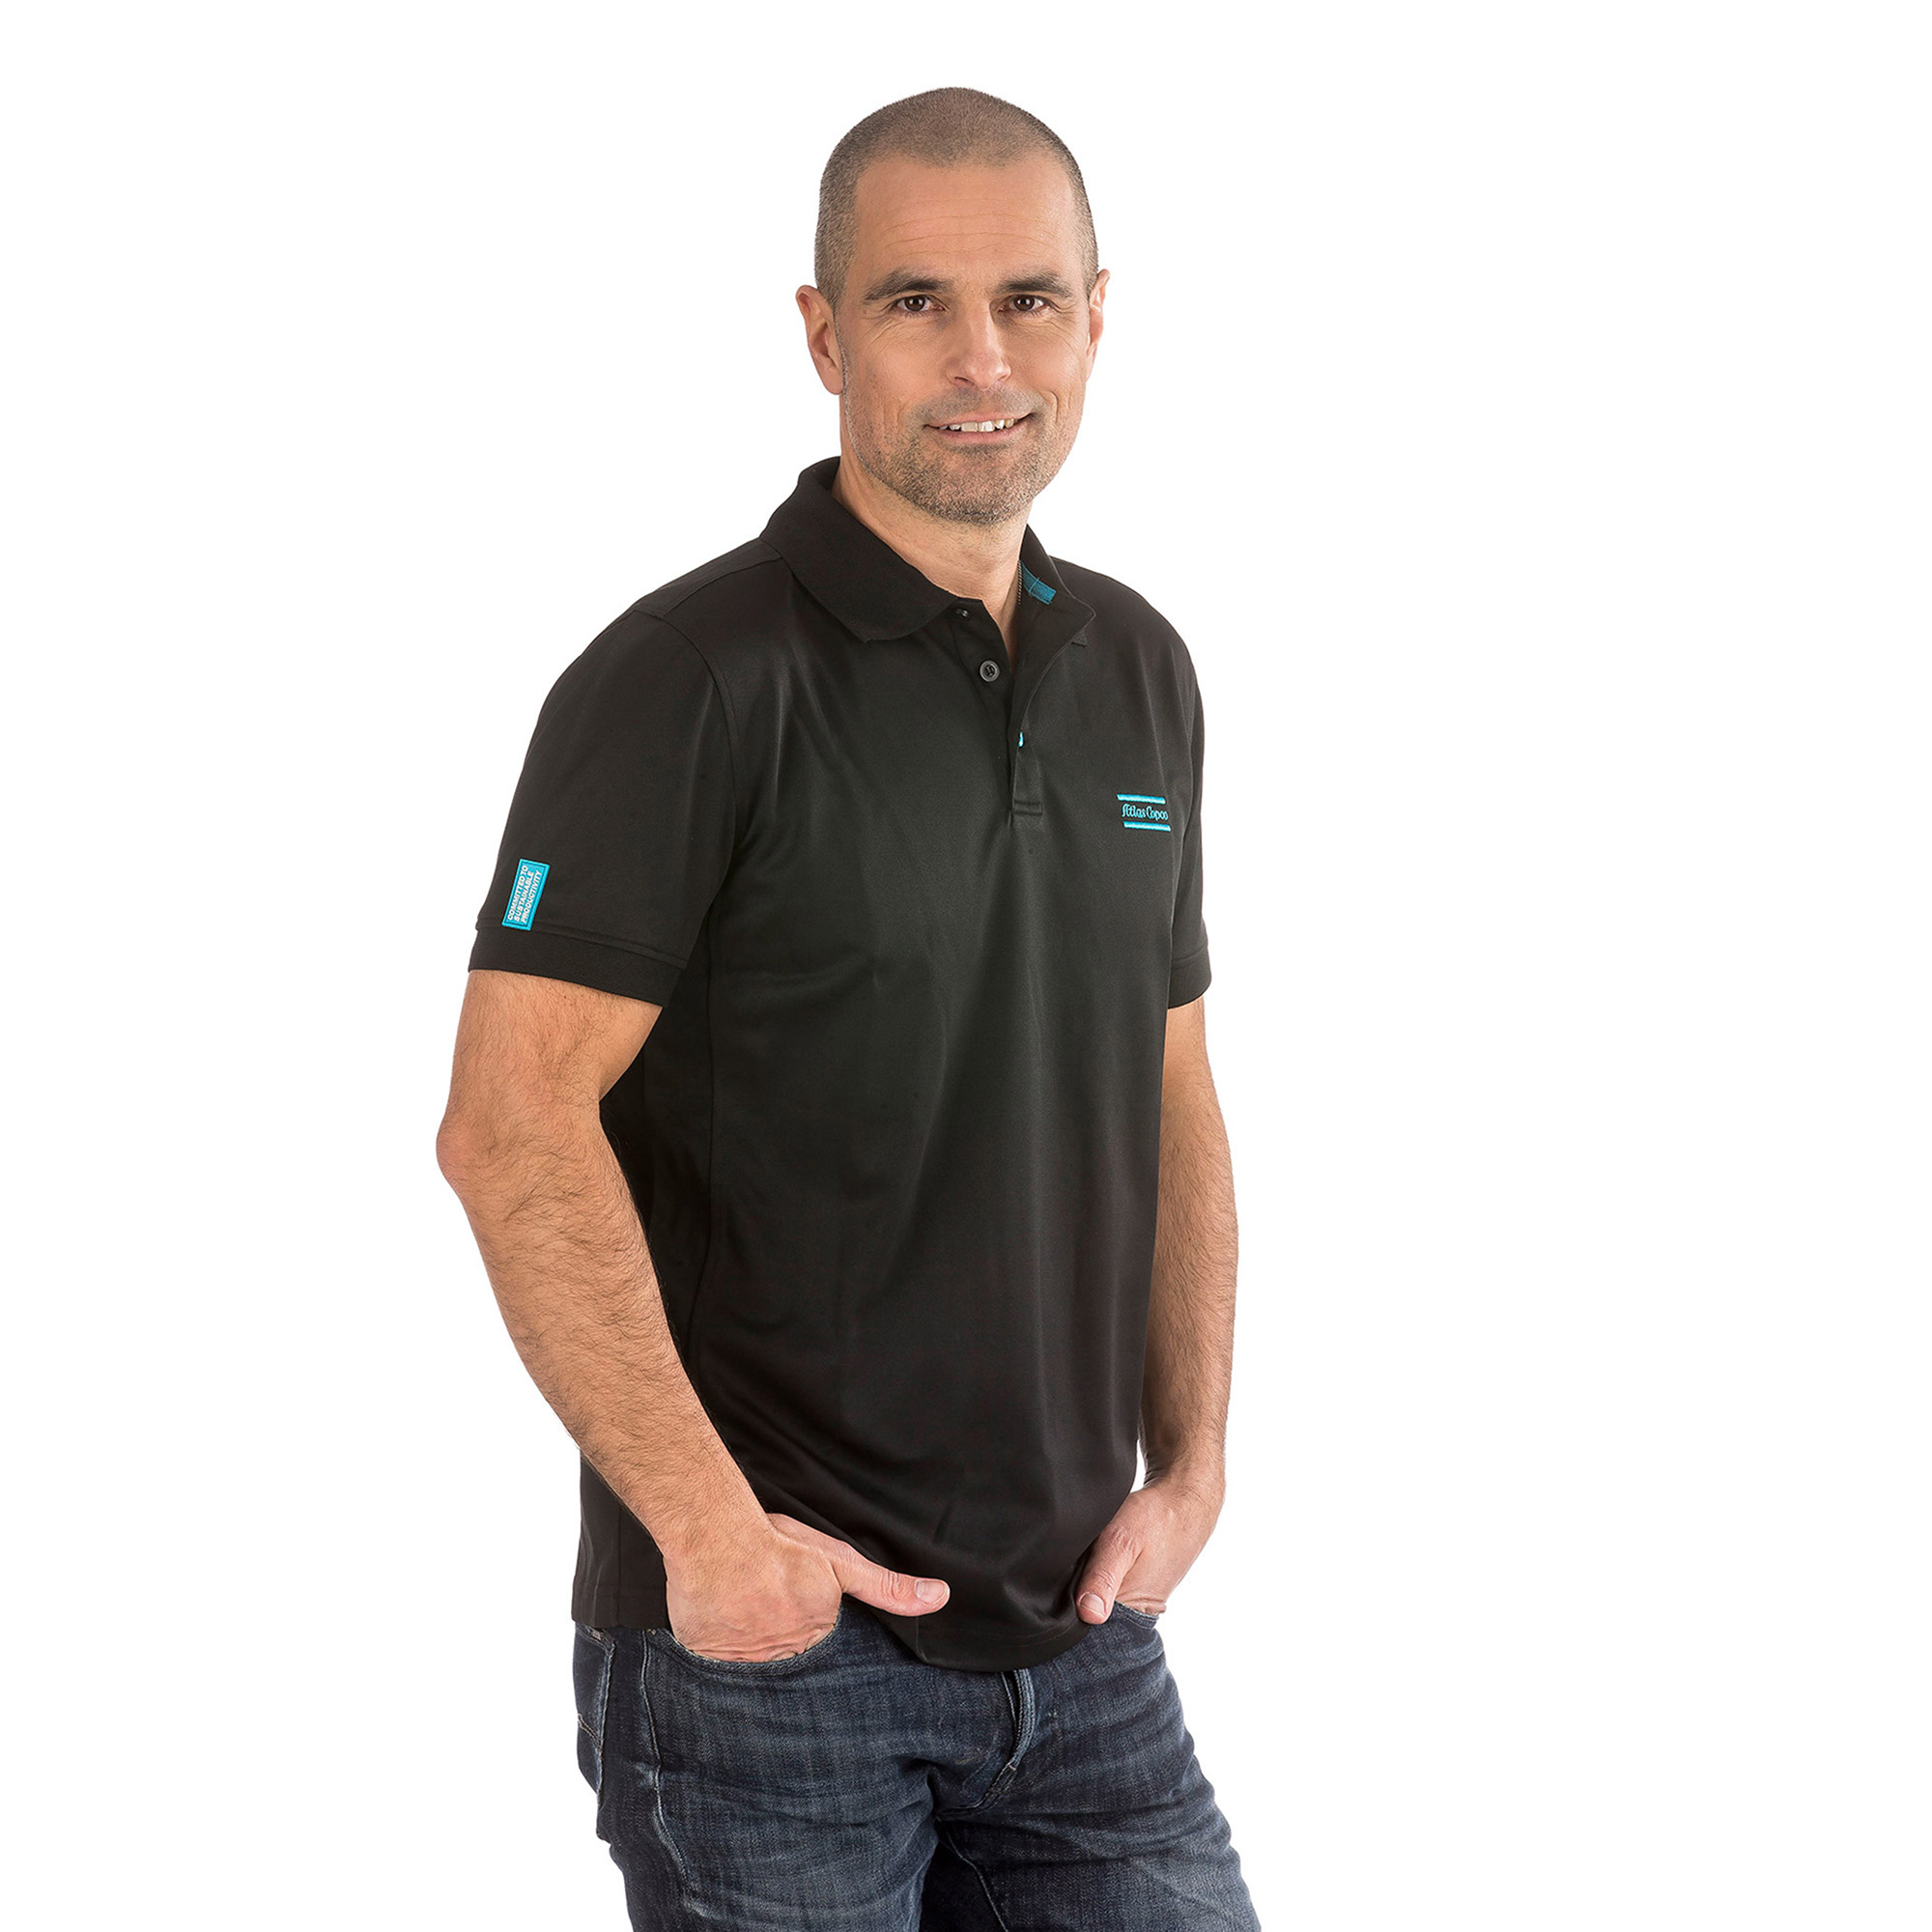 Pro Vent stands for garments that fit better in warm climates or garments that are adapted to active people. The composition of the fabric has advantages such as flexibility, unparalleled breathability, and moisture transport that keep you cool and dry. This polo is designed with a blue contrast neck tape and side slits.